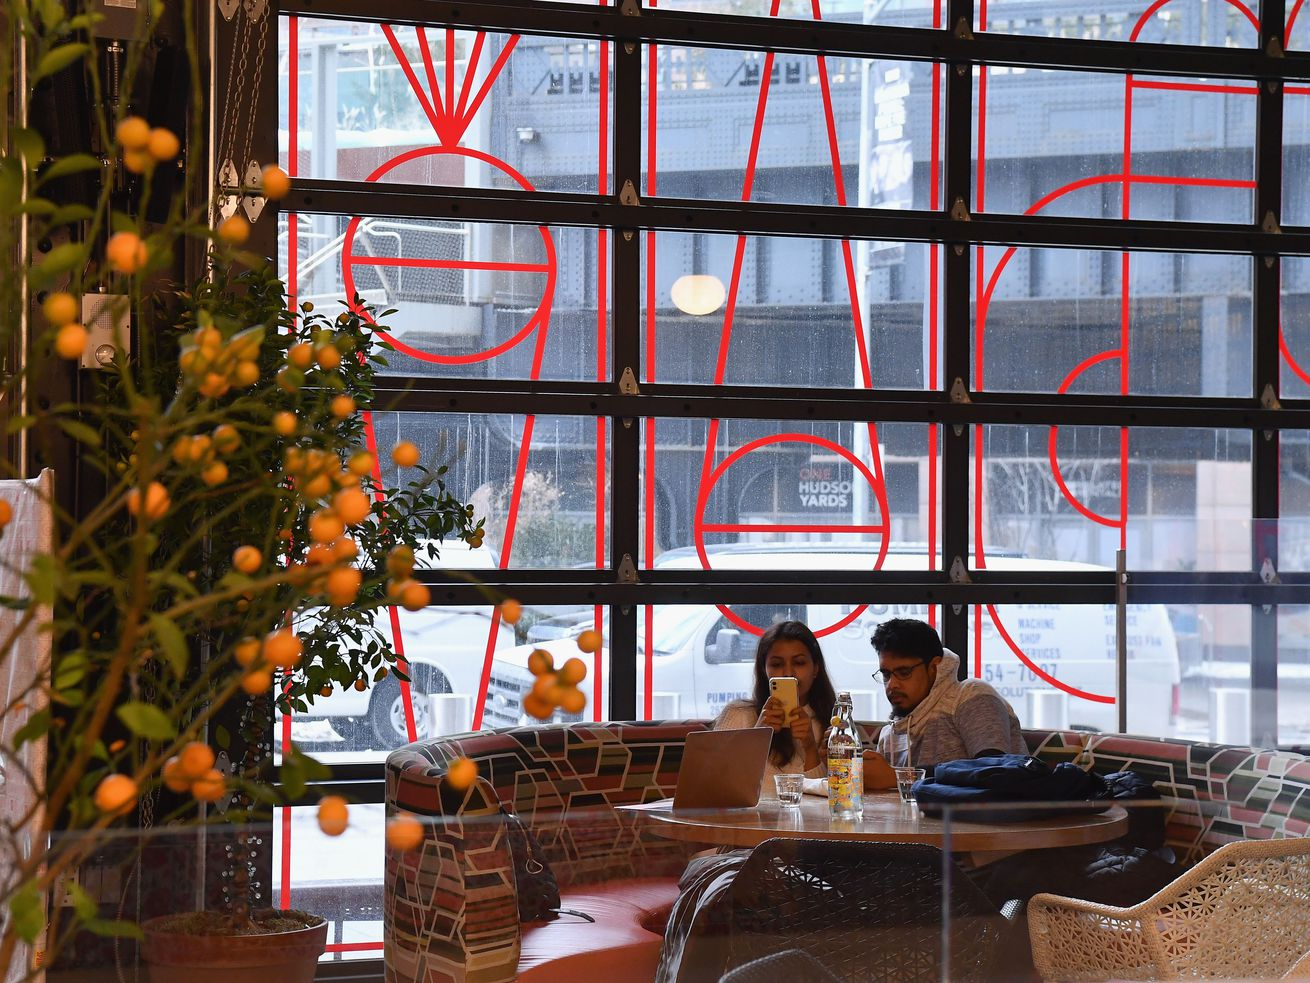 A couple dines inside a restaurant at Hudson Yards in New York City